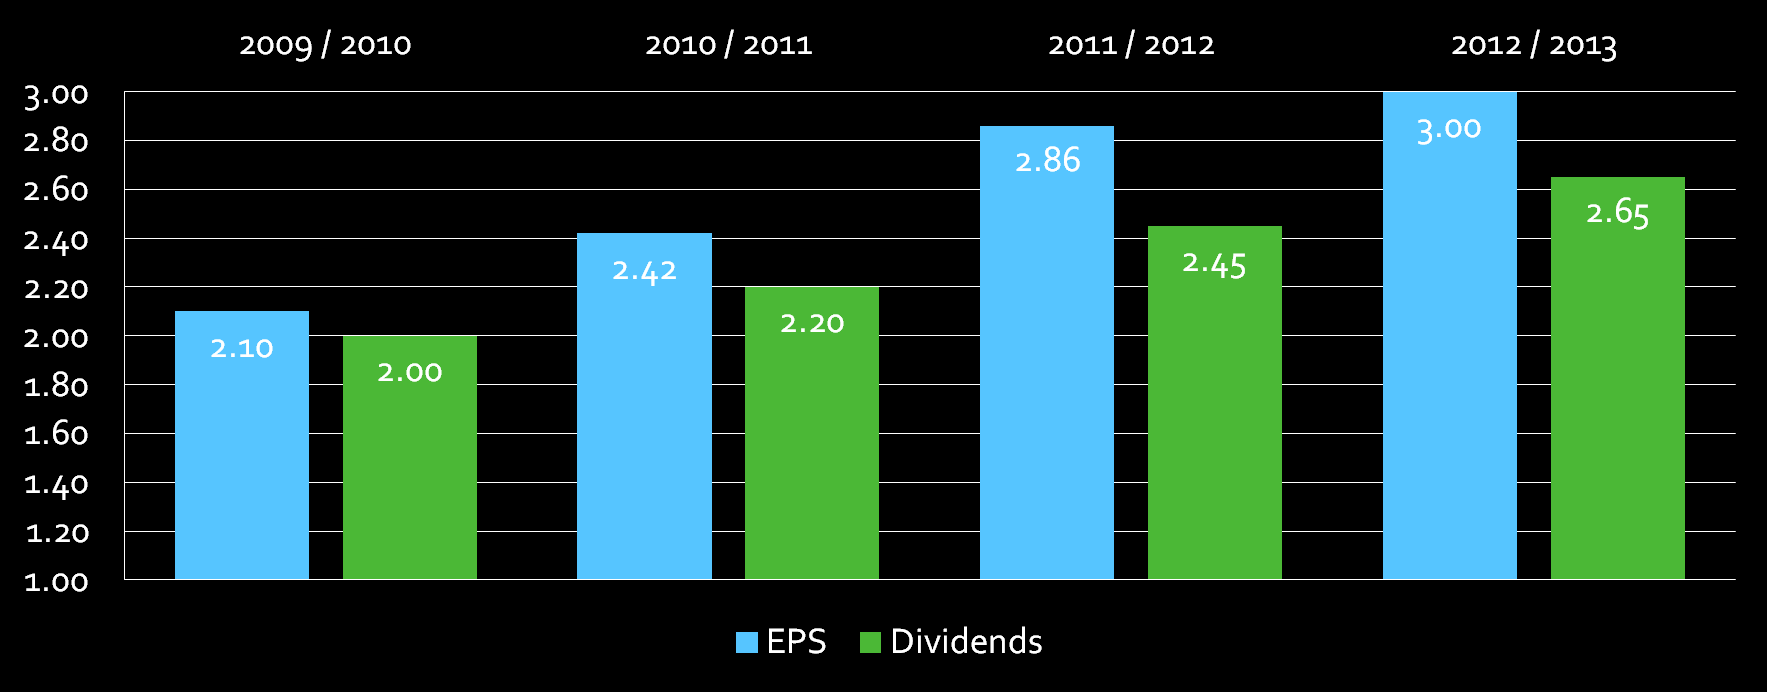 Earnings per Share and